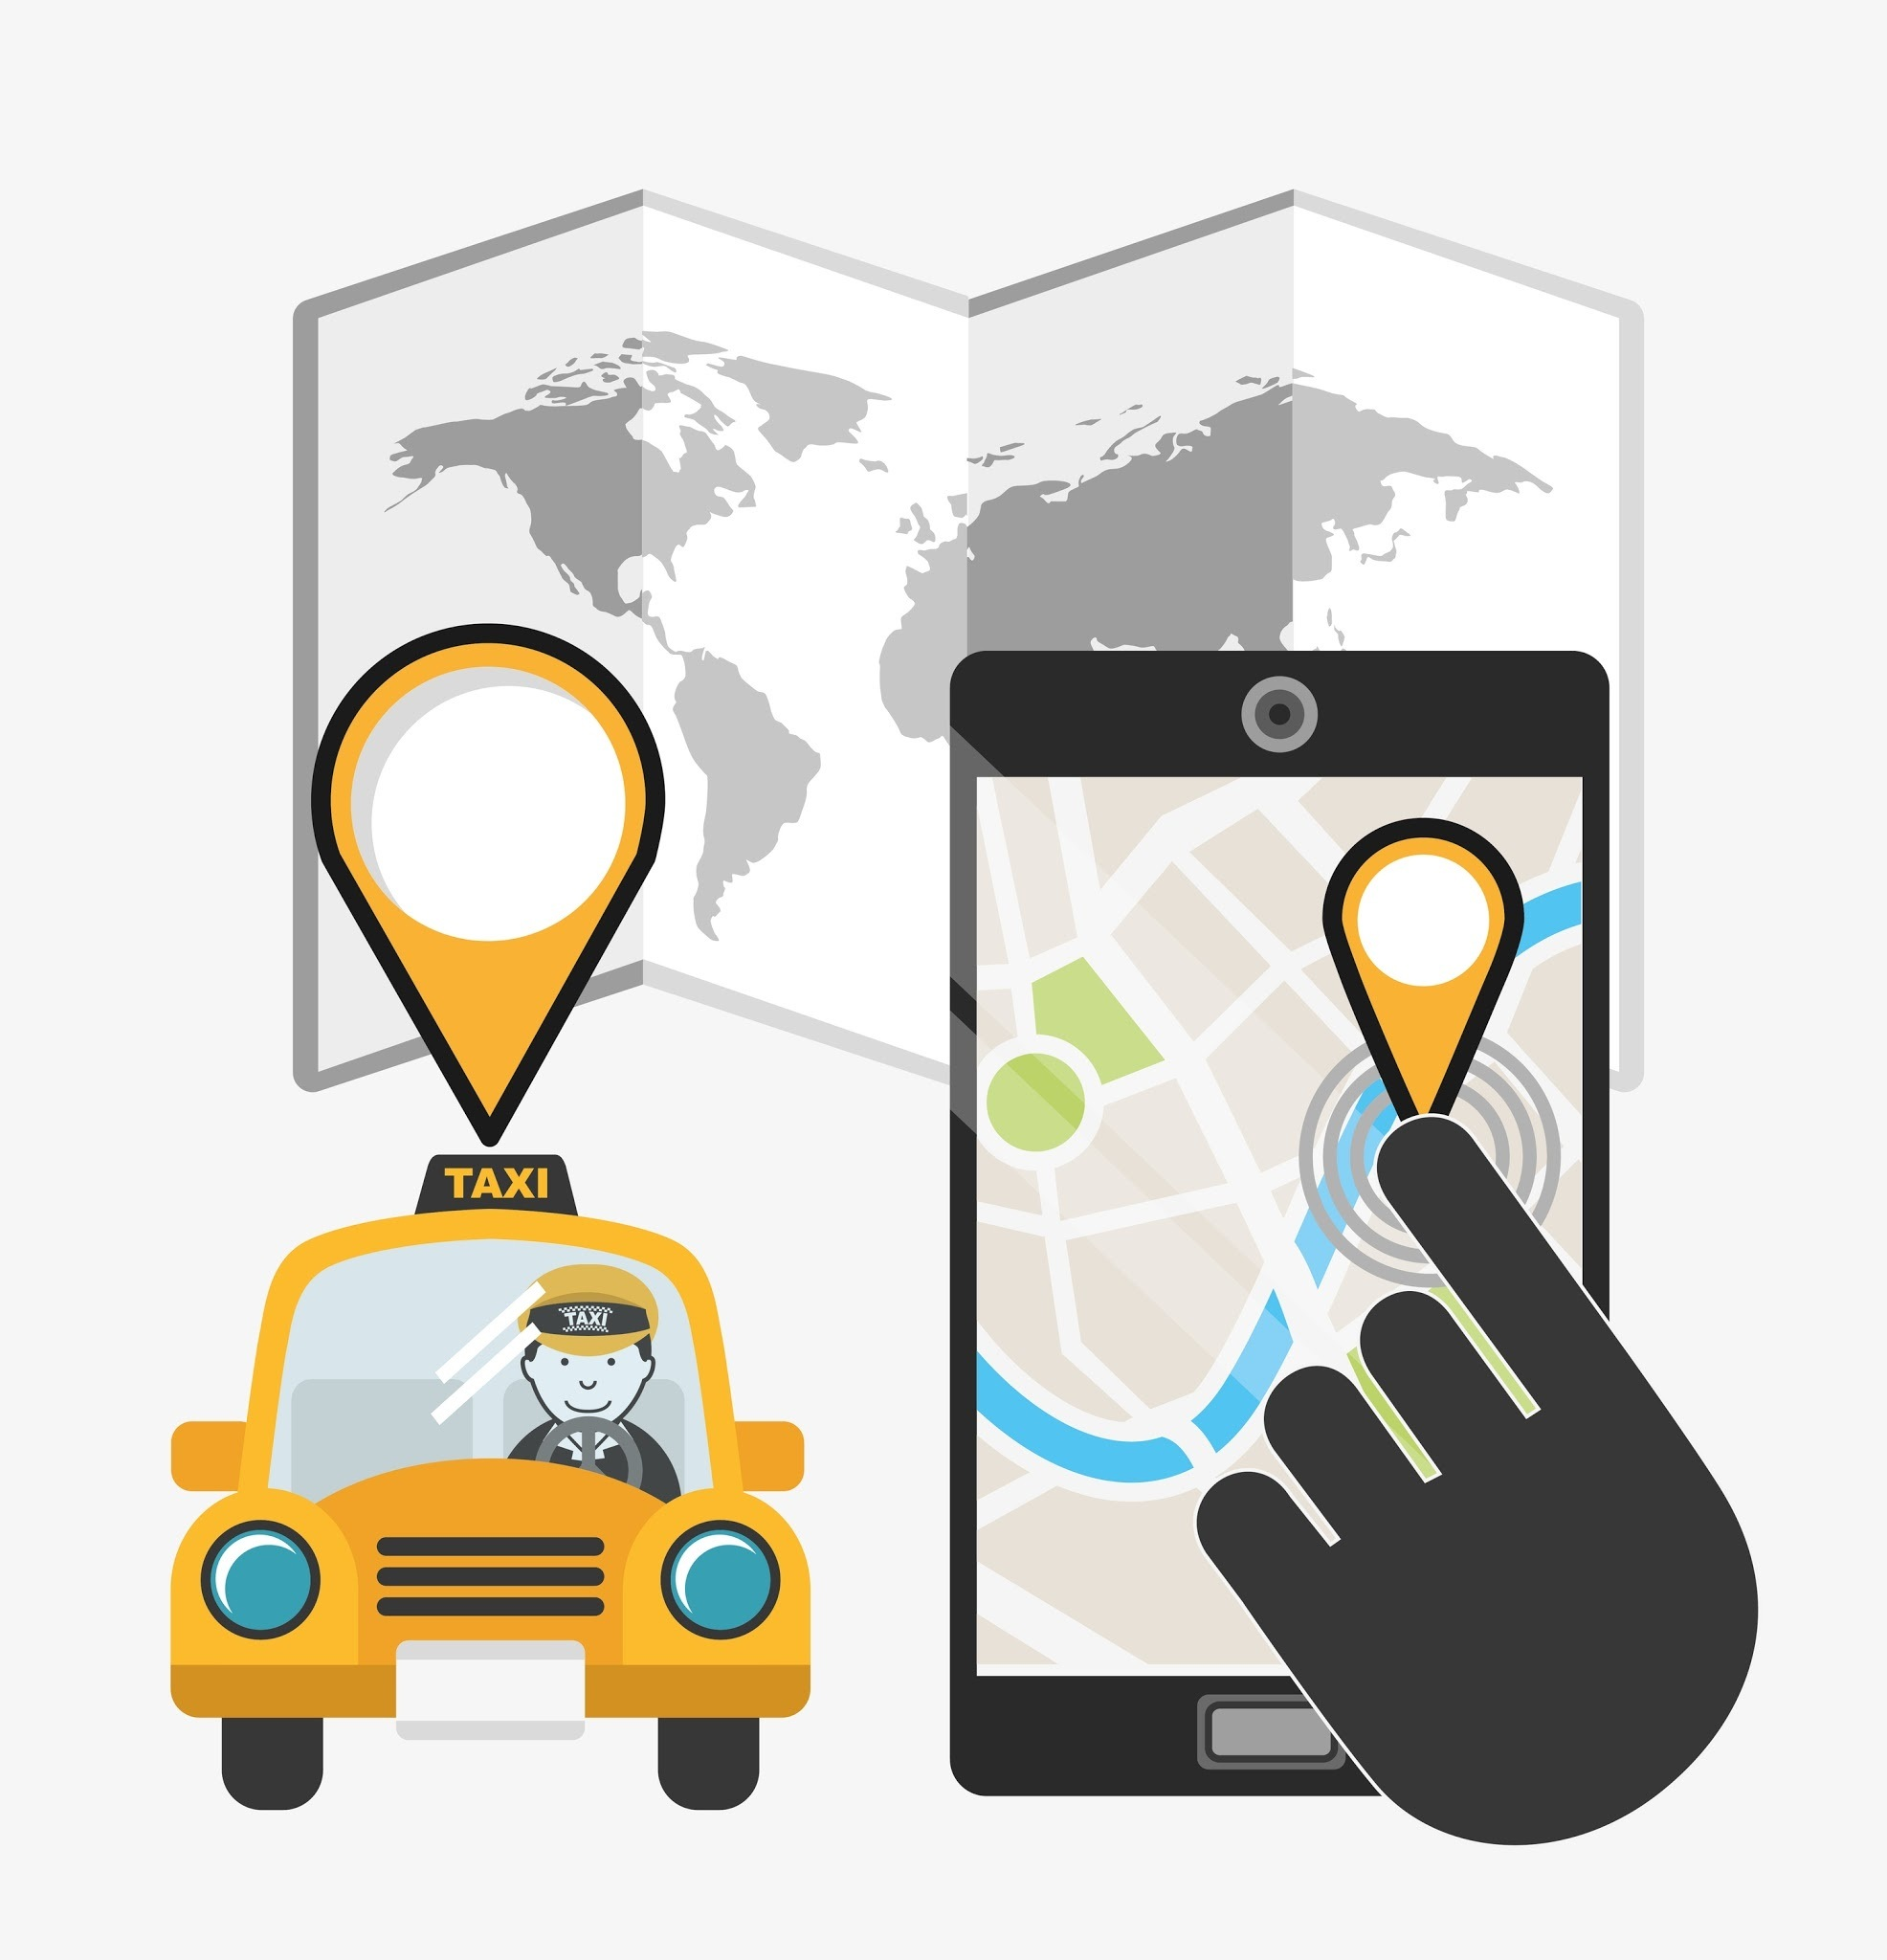 How to create an app similar to Uber/Ola on a small scale